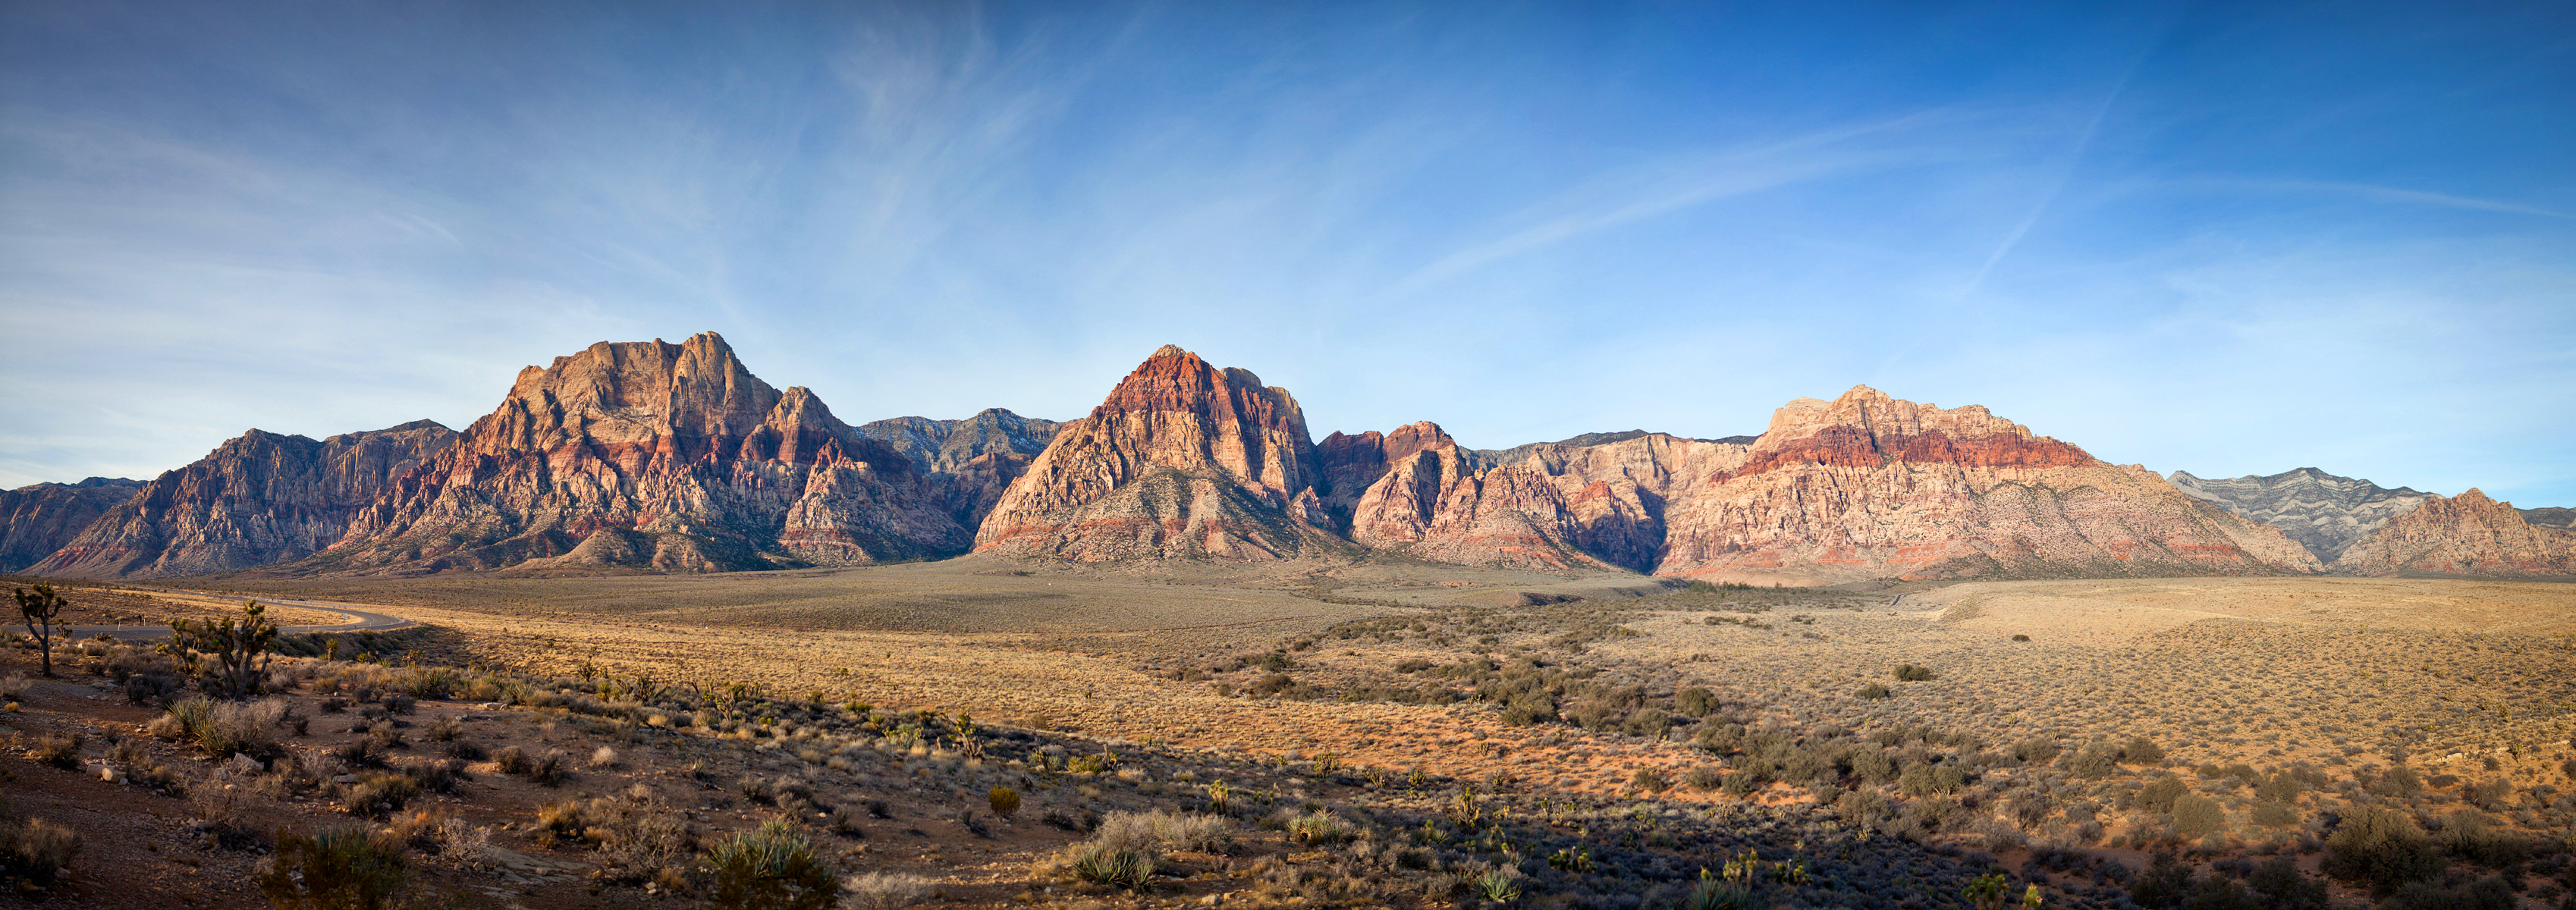 Red Rock Canyon Panoramic